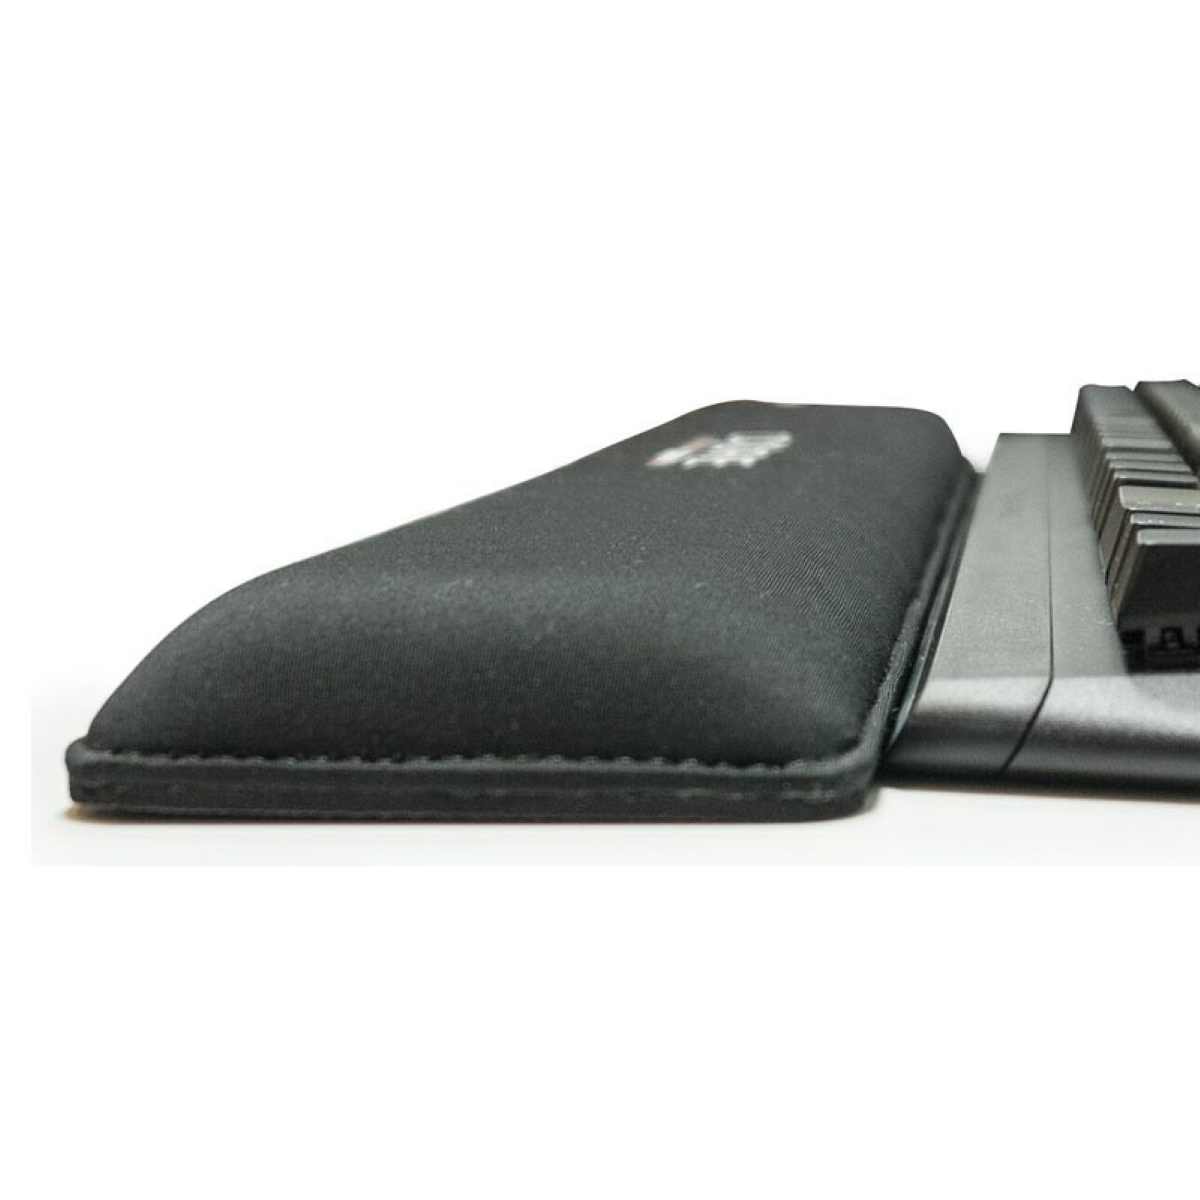 Gaming Laptop Accessories: Core Gaming Gel Wrist Rest - Easy to Clean Fabric